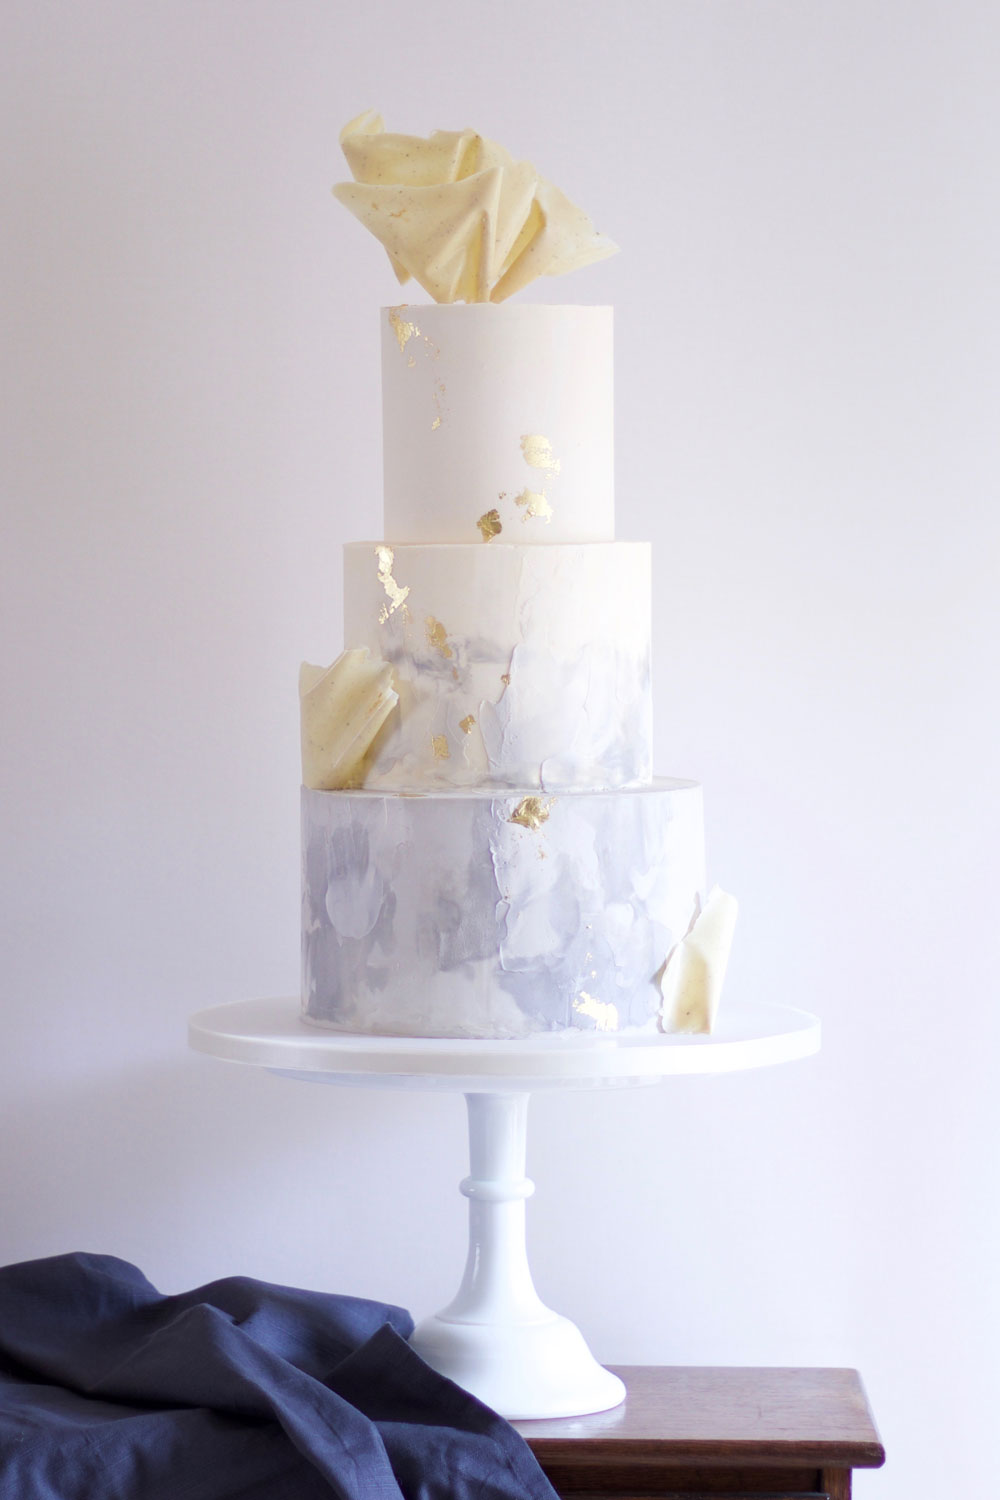 Wedding Cake Designer, Wedding Cake, Weddings, Cake Designer, Cake Maker